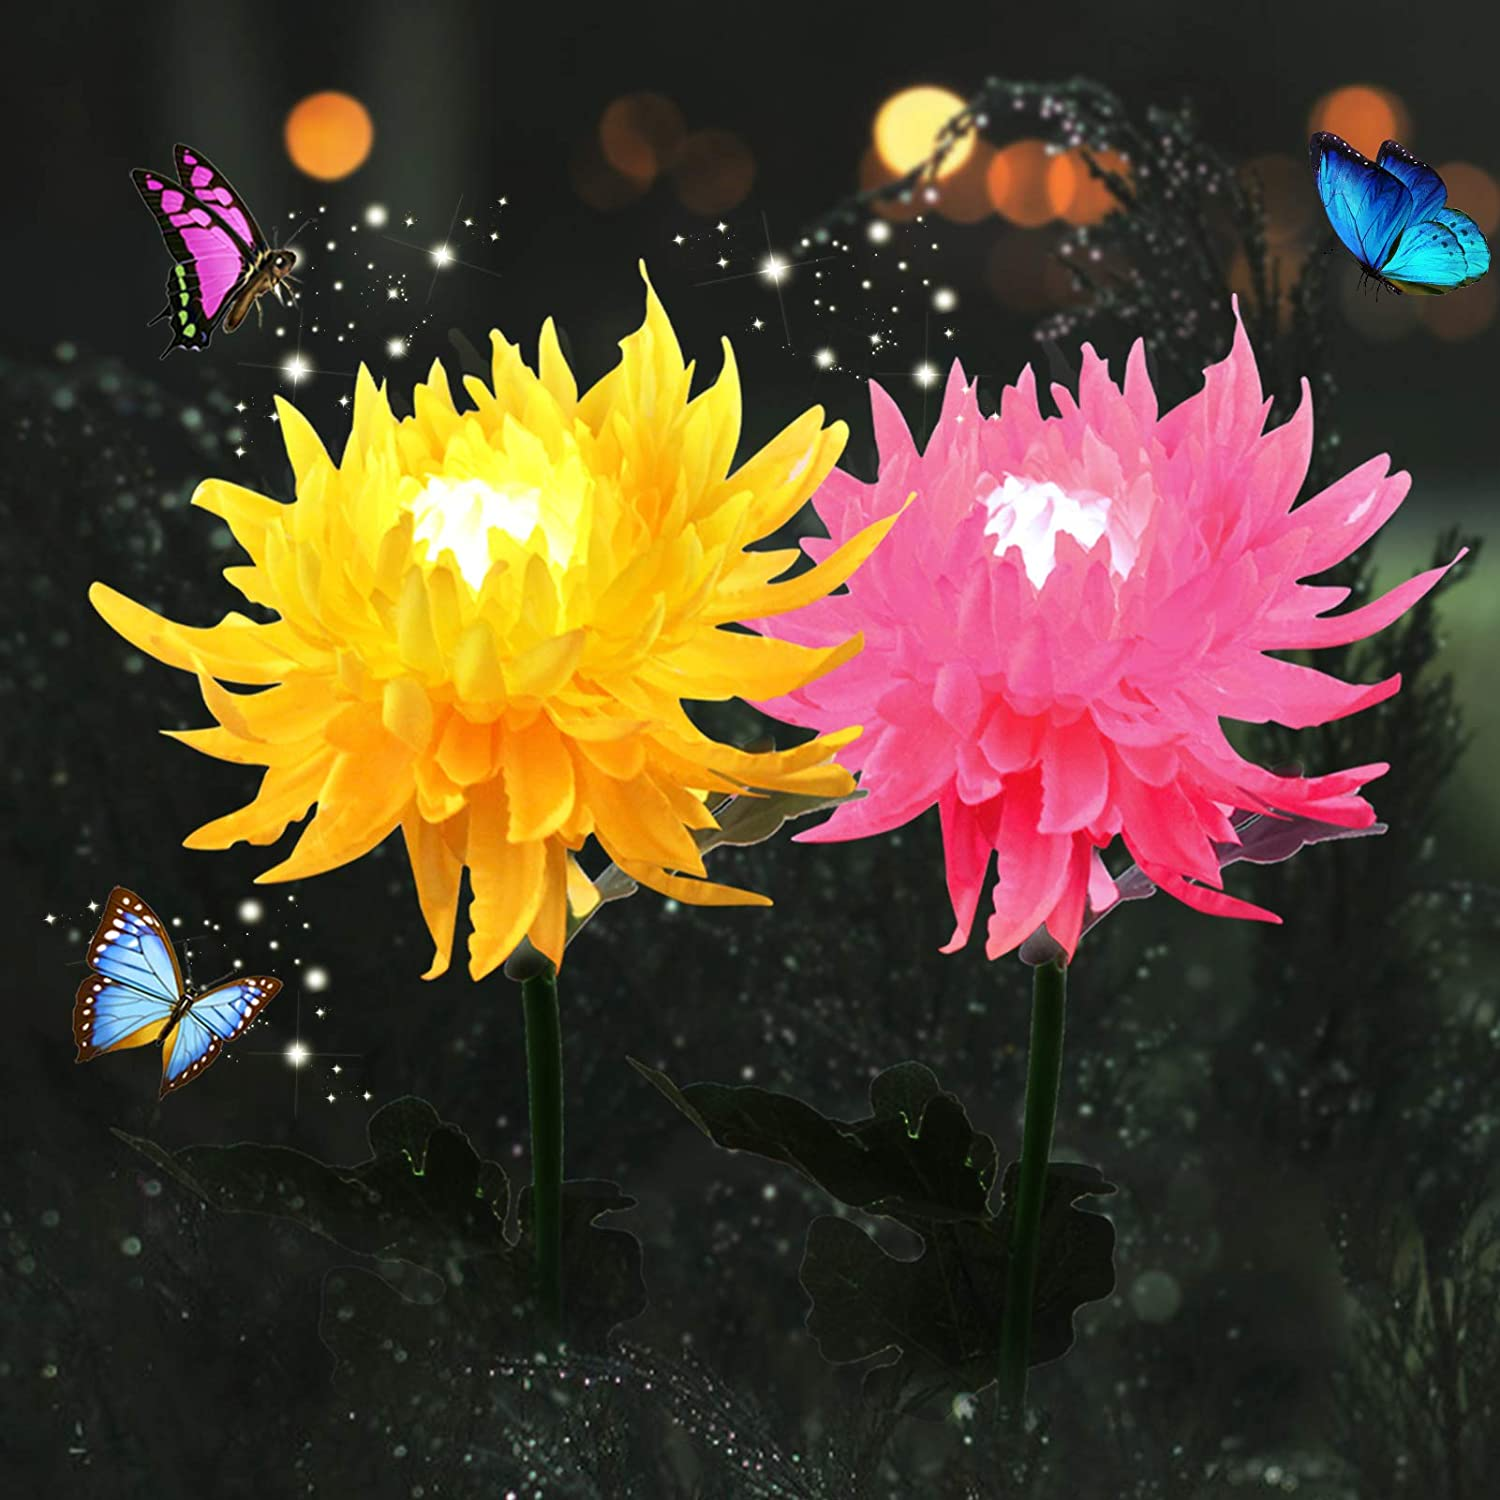 Solar Flowers Garden Lights Outdoor AHNNER Large Chrysanthemum Decoration for Yard Patio, Flower Size 5 inch, 29.5 inch High, 2pack (Yellow + Powder)